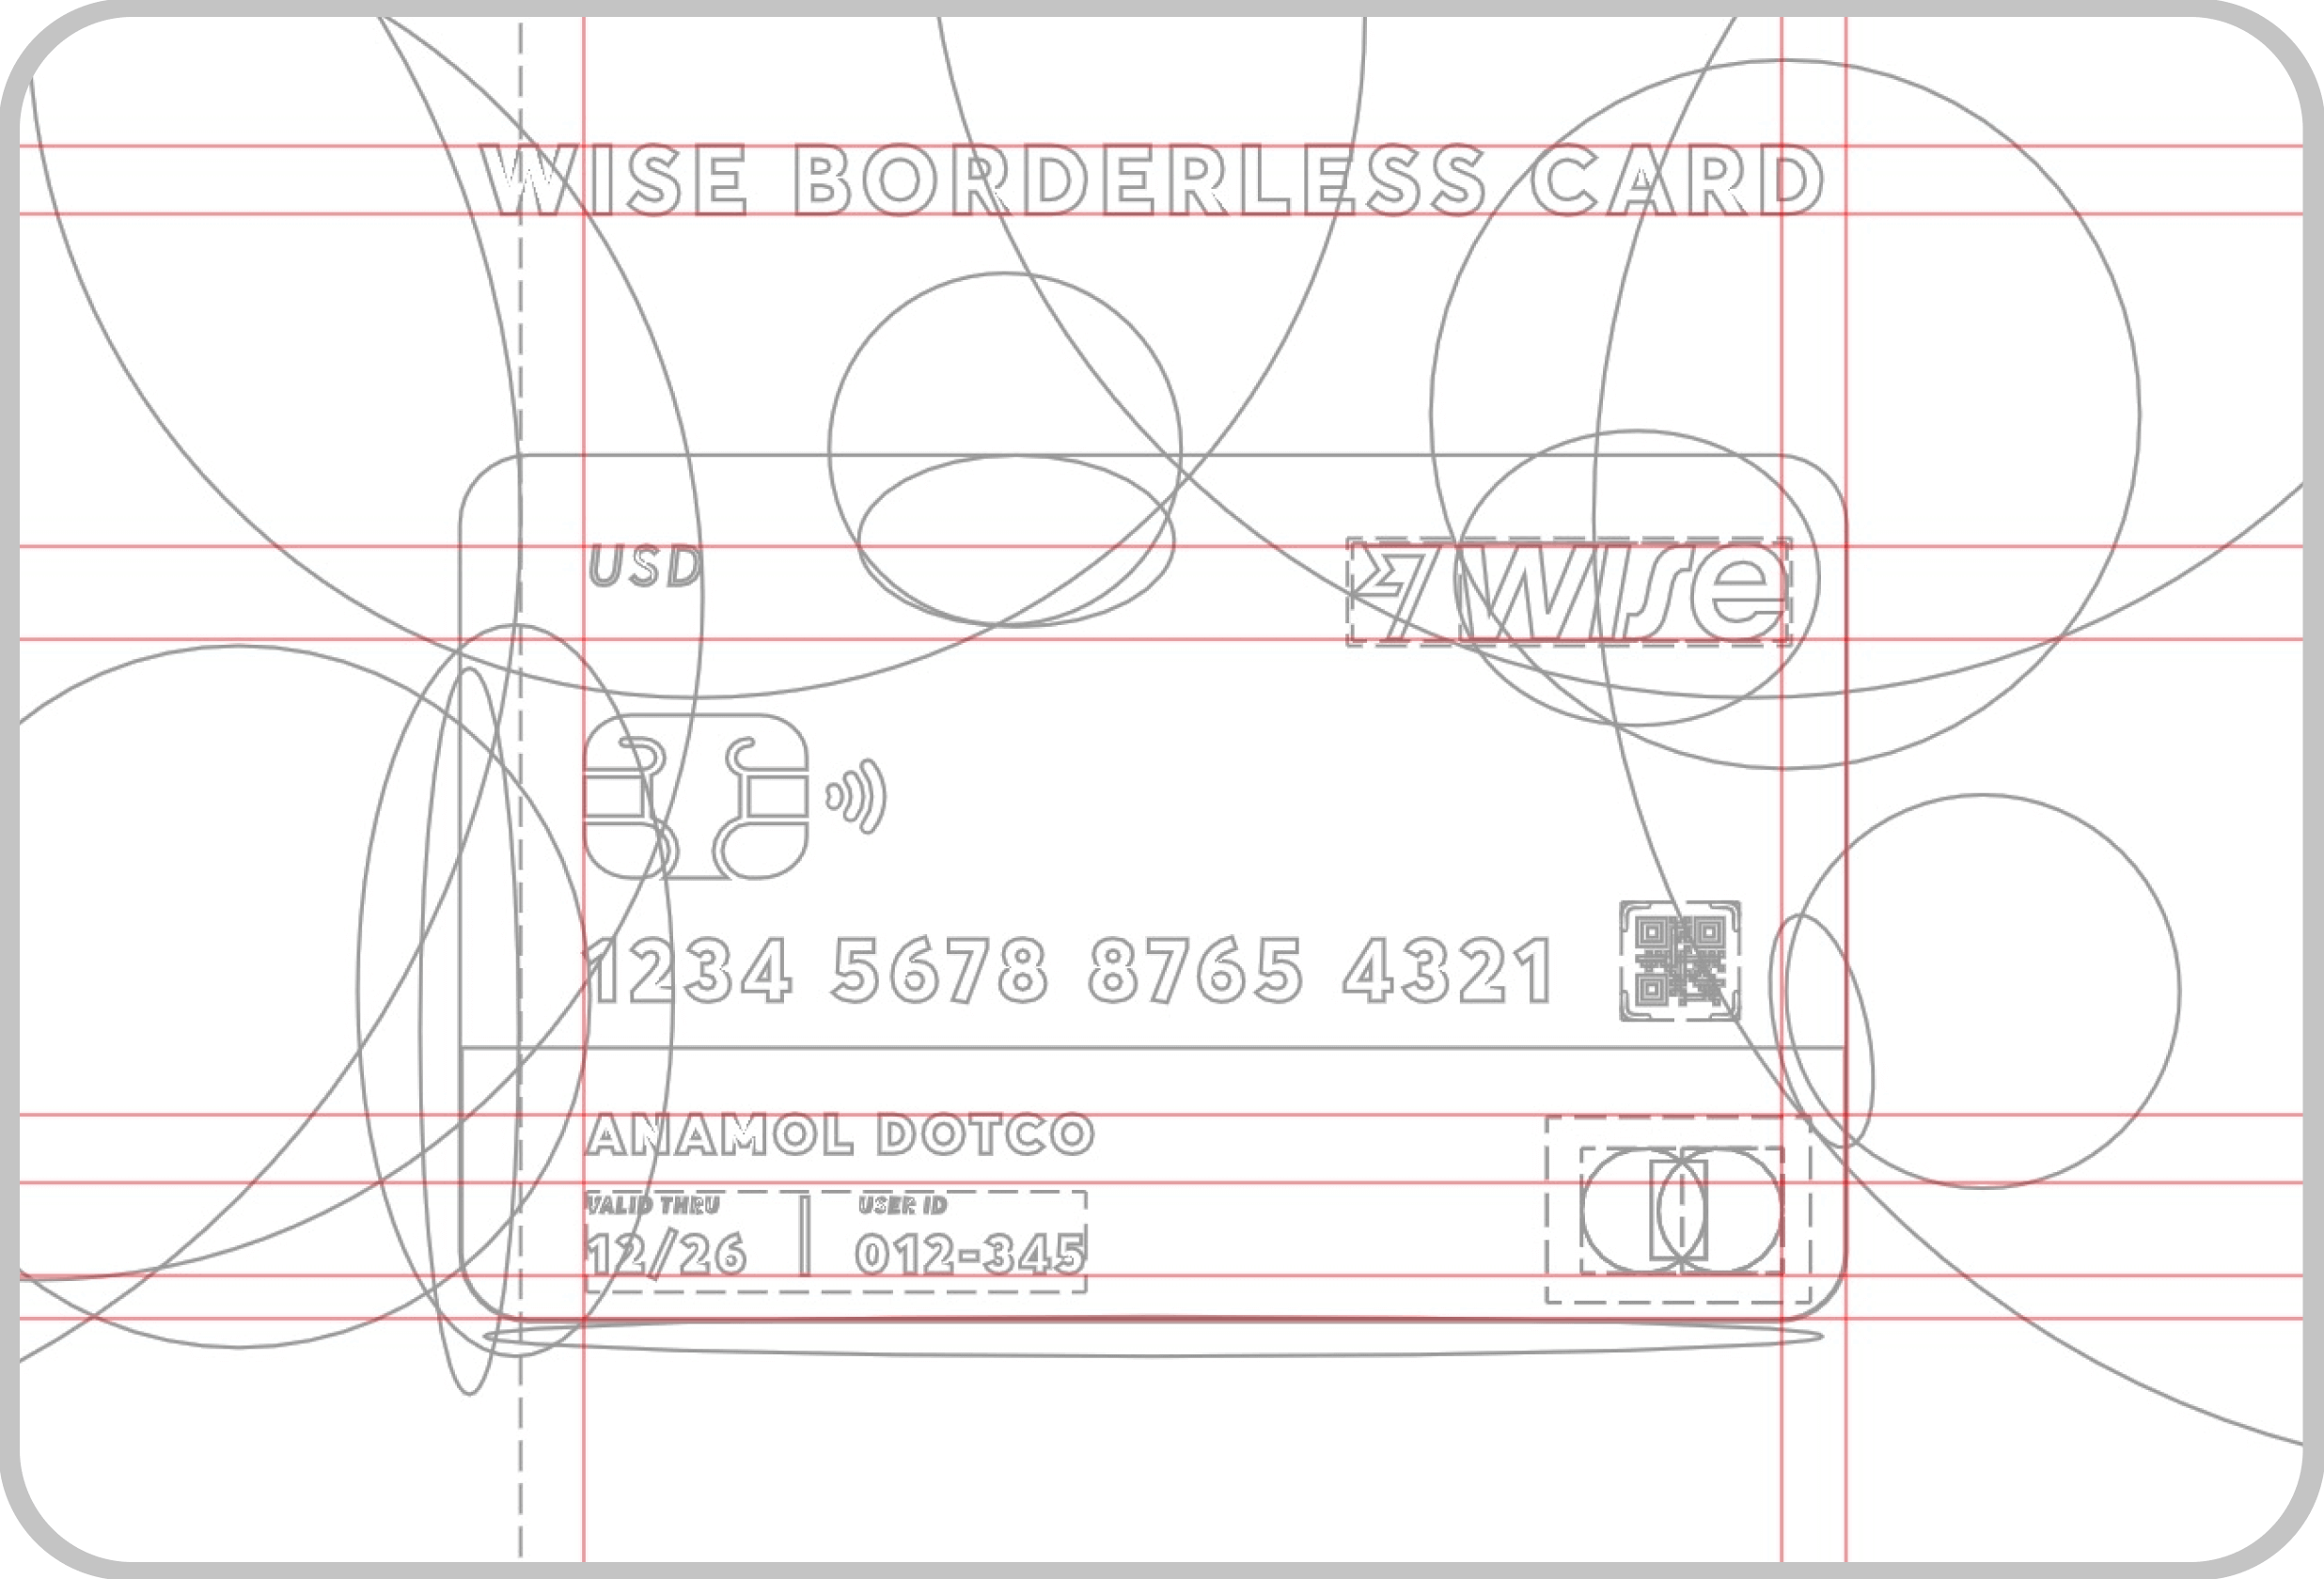 wise borderless card concept - wireframe outline